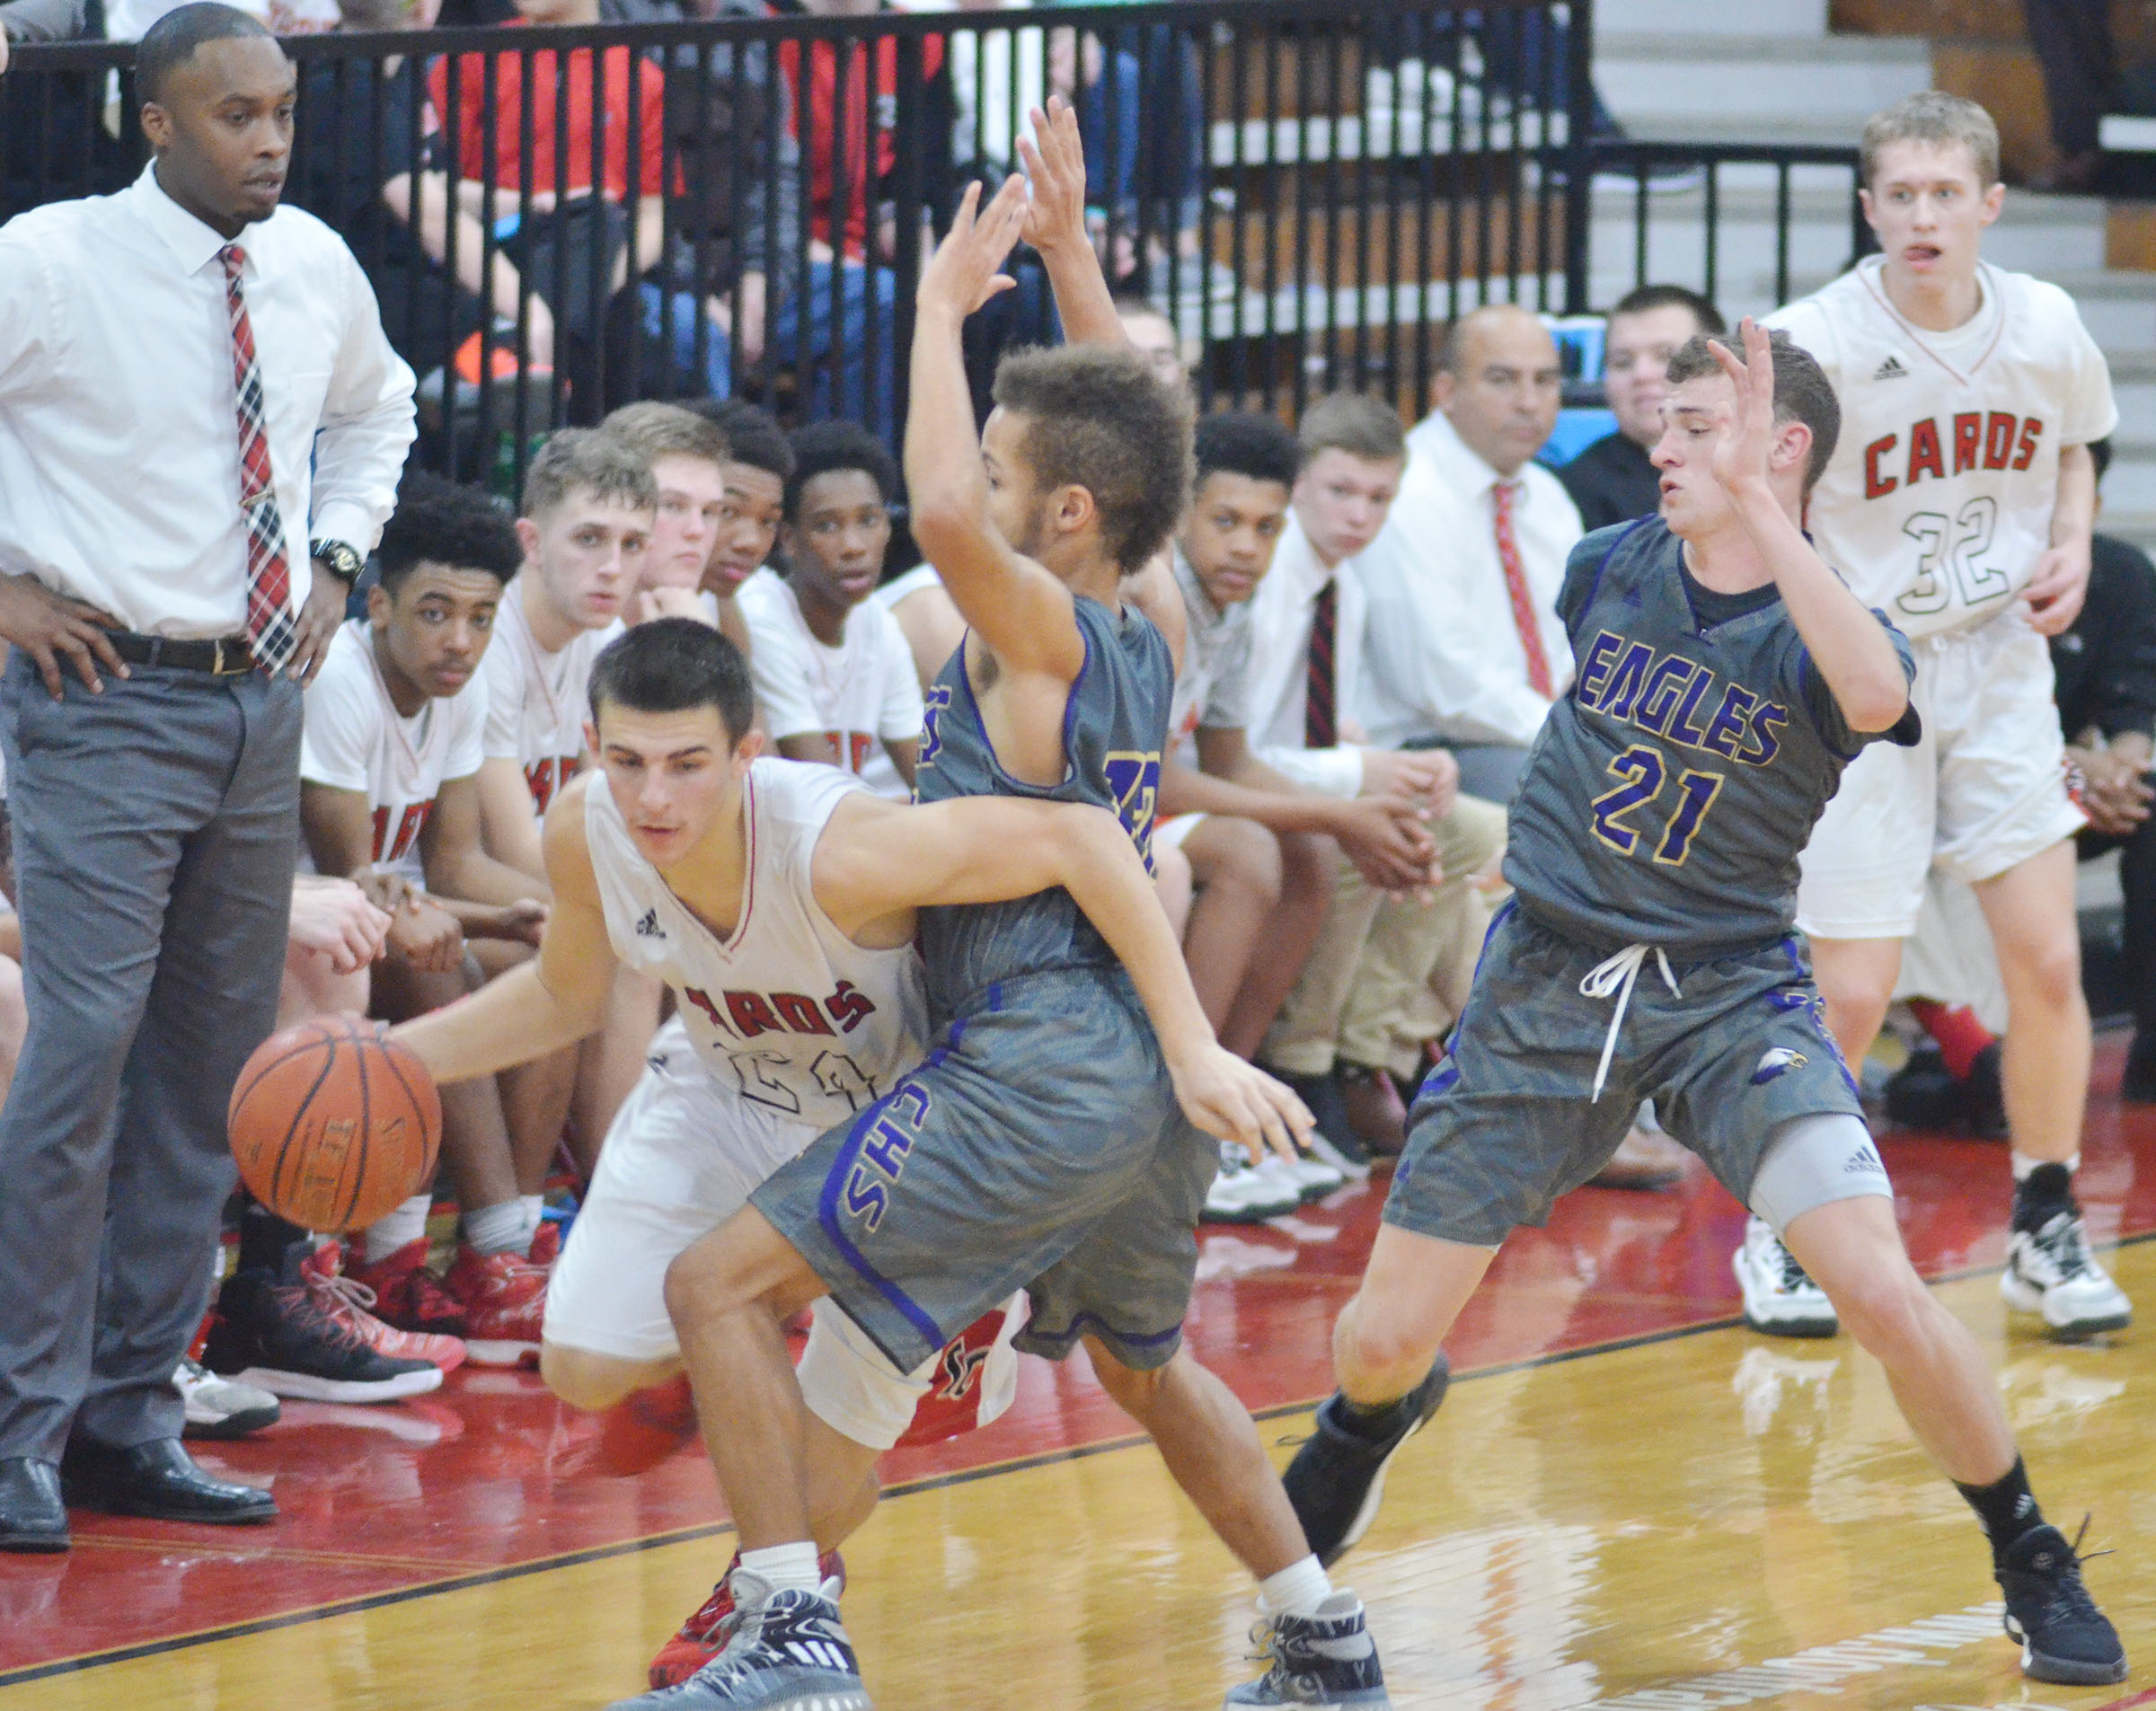 CHS juniors Ethan Lay, at left, and Connor Wilson play defense.